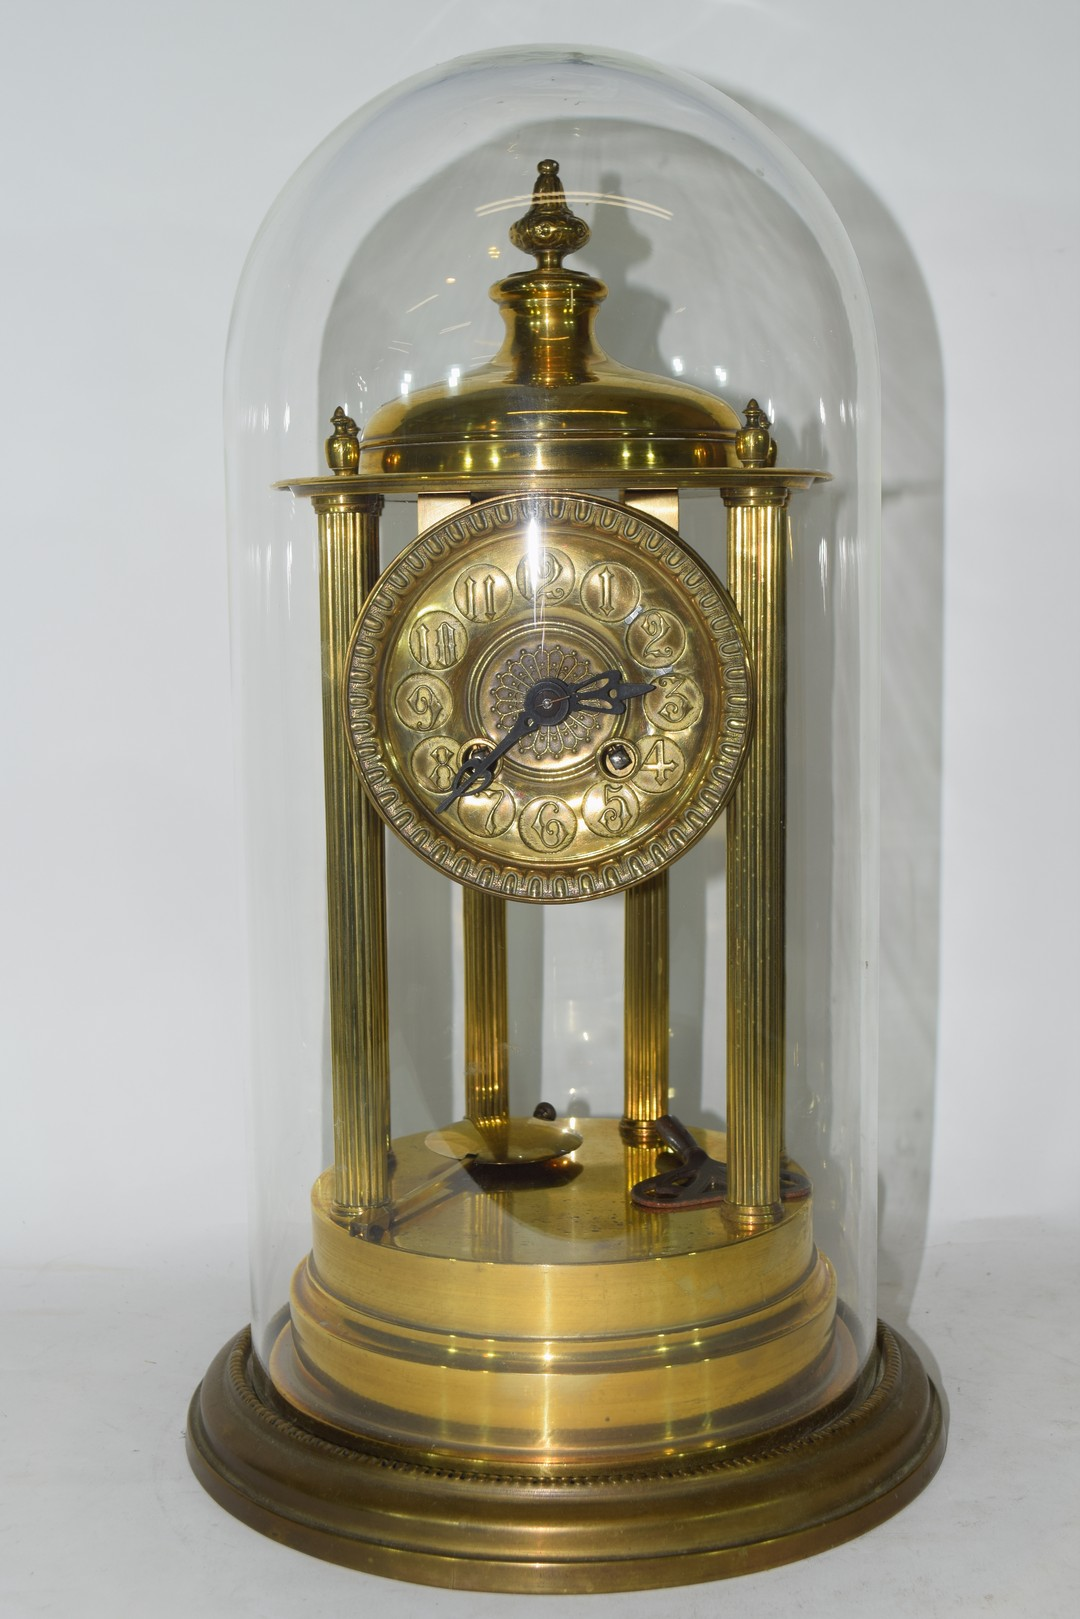 Late 19th/early 20th century French mantel clock